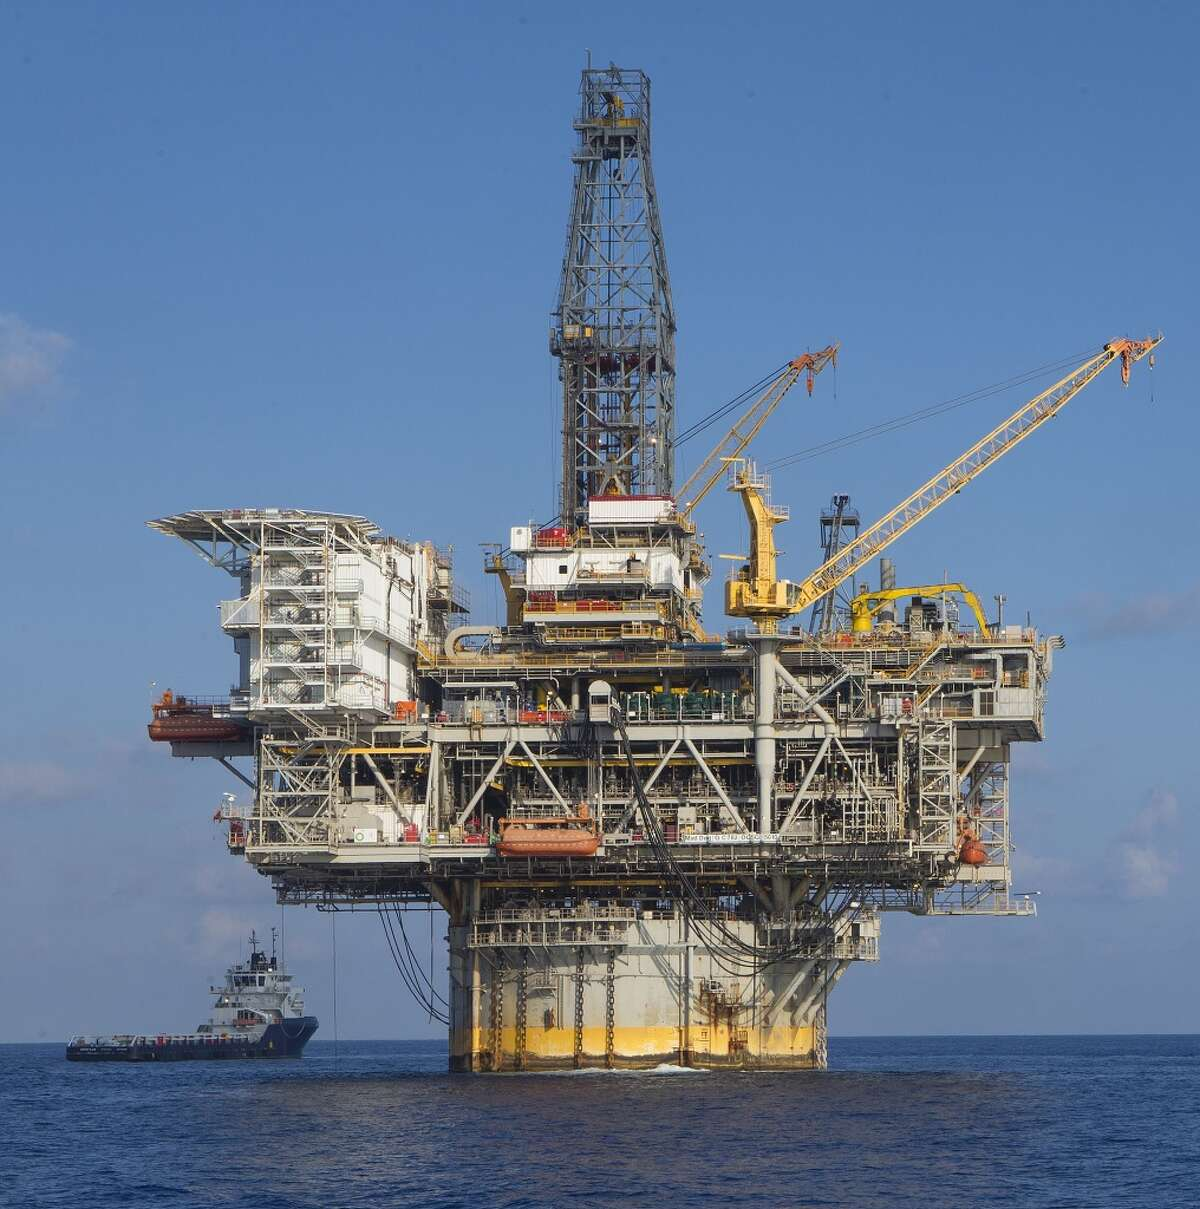 3.Platforms on 49 offshore rigs were wiped out.The platforms that were destroyed were generally older operations with relatively low production volumes. A total of 578 manned platforms endured the hurricane. Here, reconstructed drilling rig on BP's Mad Dog oil and gas production platform, replacing a rig damaged by Hurricane Ike in 2008, has resumed development drilling at the Mad Dog field complex in the Gulf of Mexico, BP said Nov. 19, 2013.